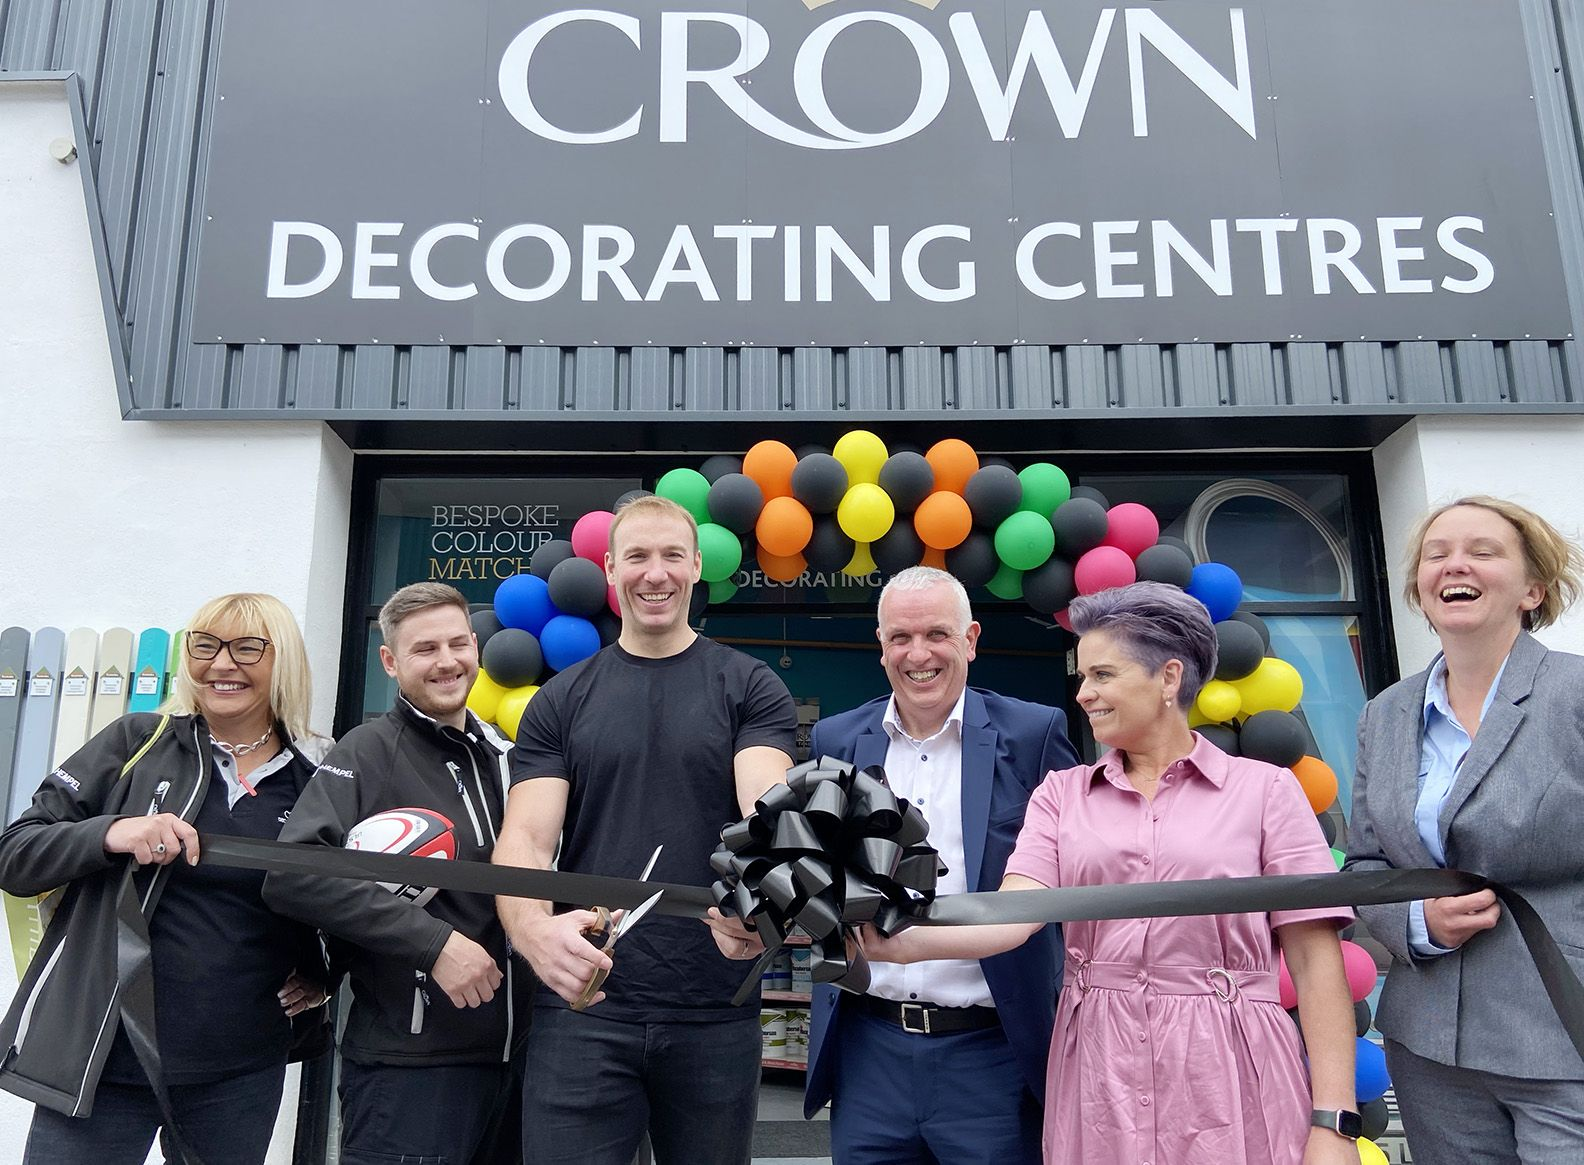 GRAND OPENING: The new Crown Decorating Centre on the Saintfield Road was opened by Stephen Ferris